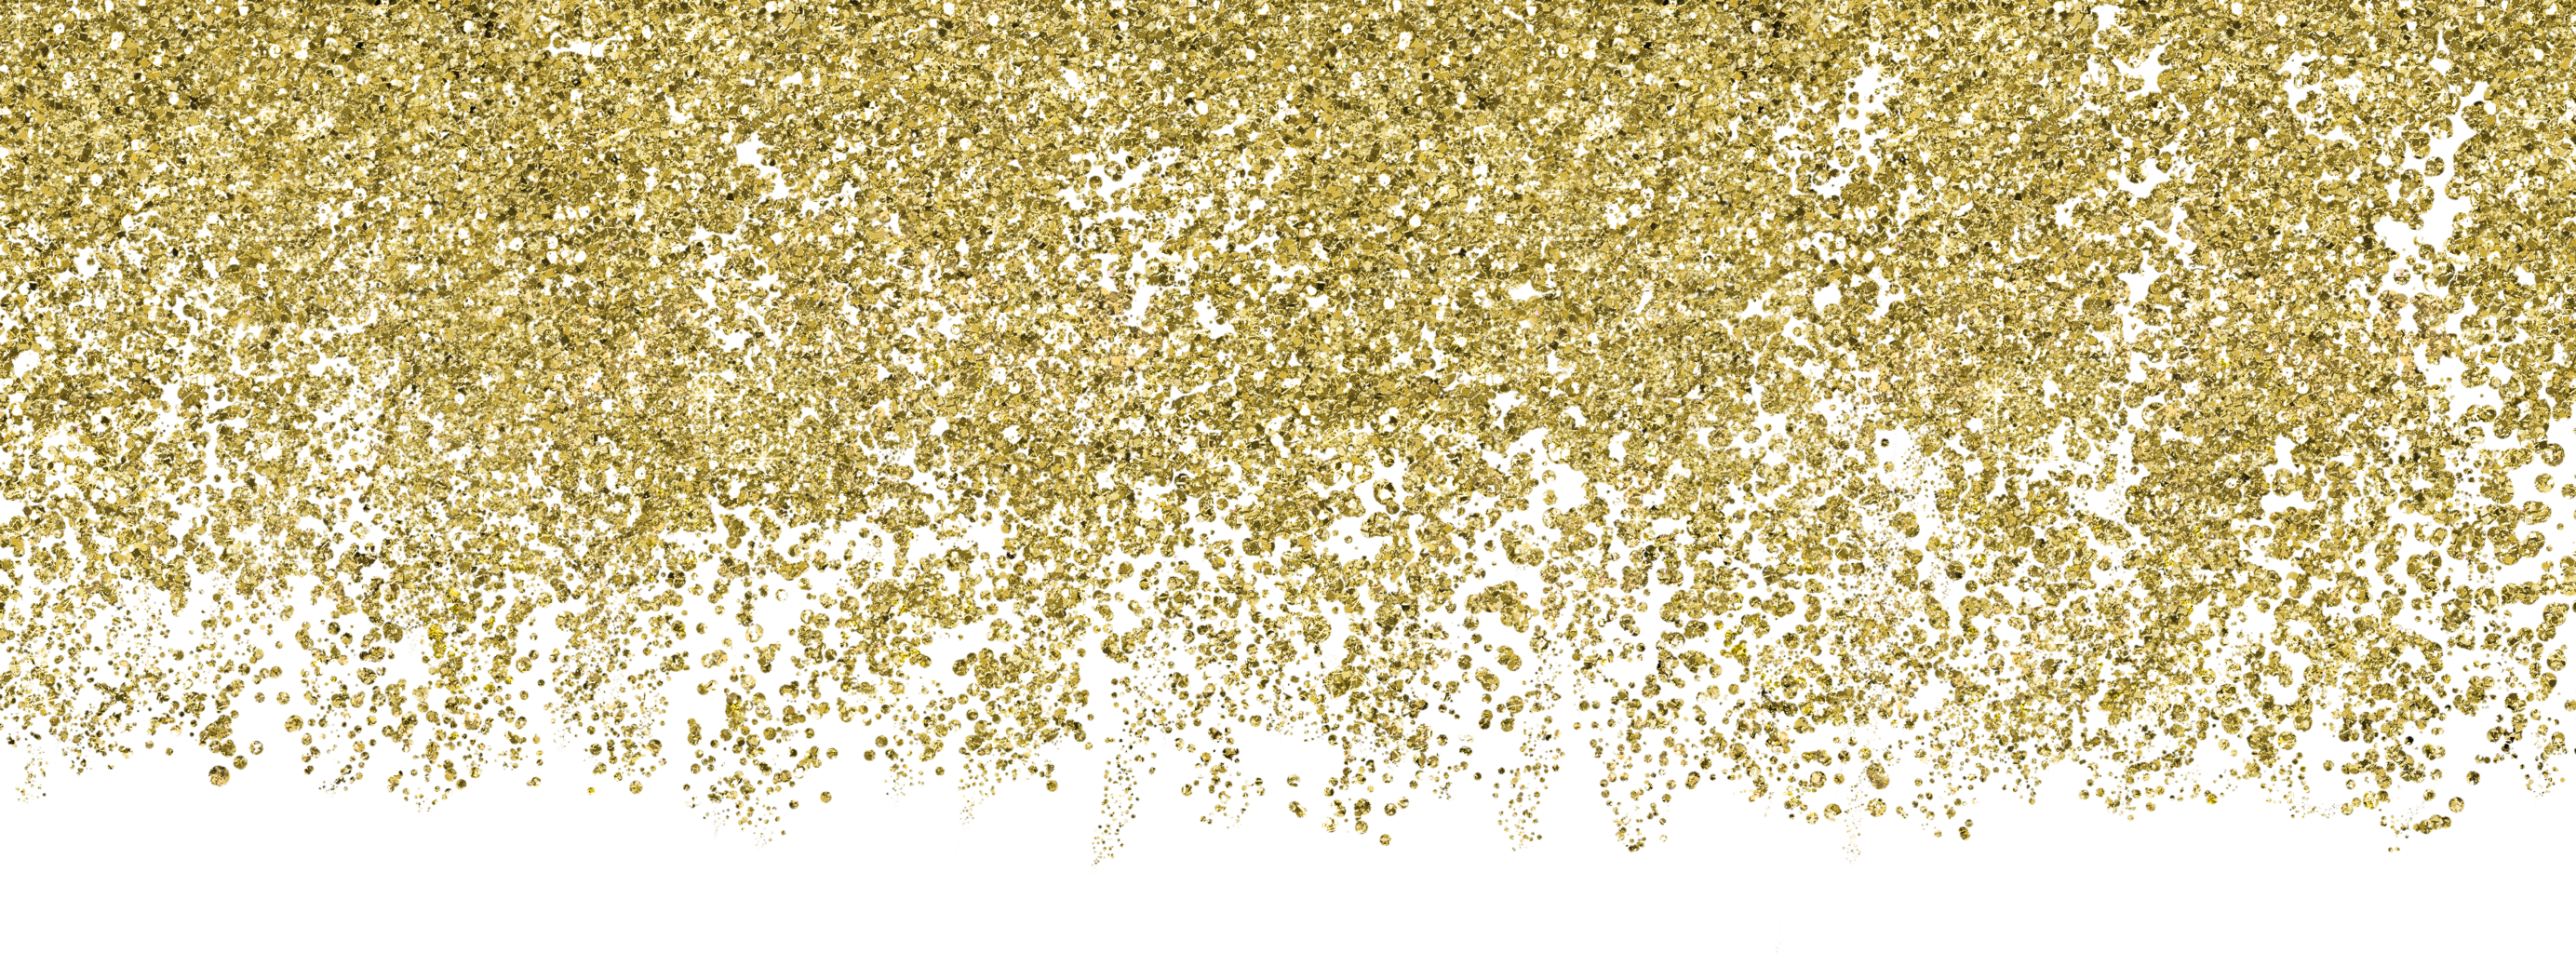 Falling gold glitter png. Wallpaper ytansparent back wallskid